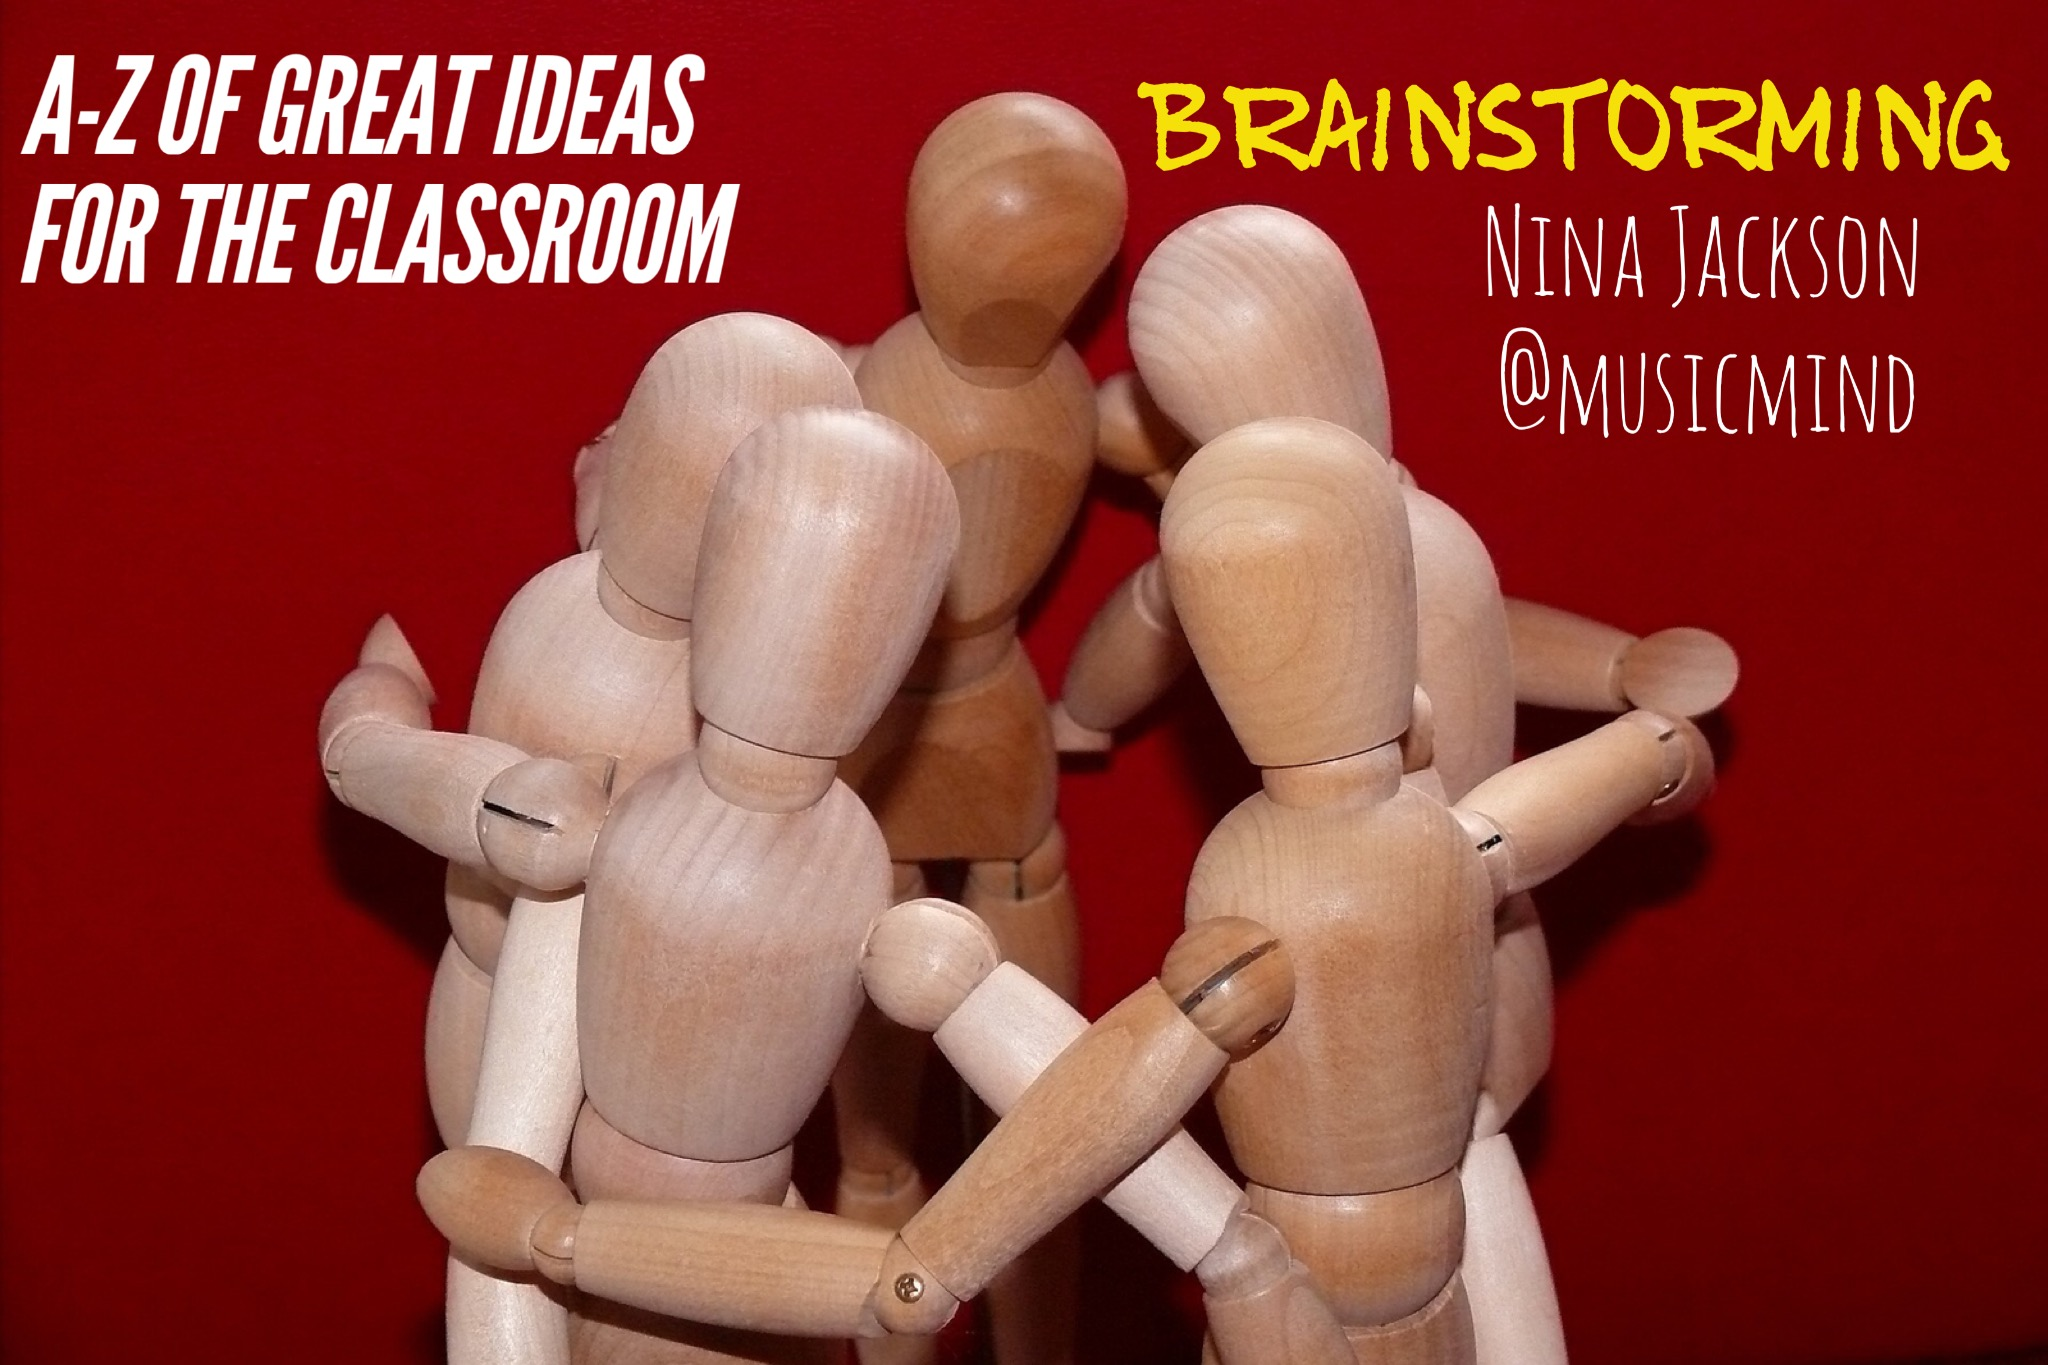 A-Z of great ideas for the classroom – Brainstorming